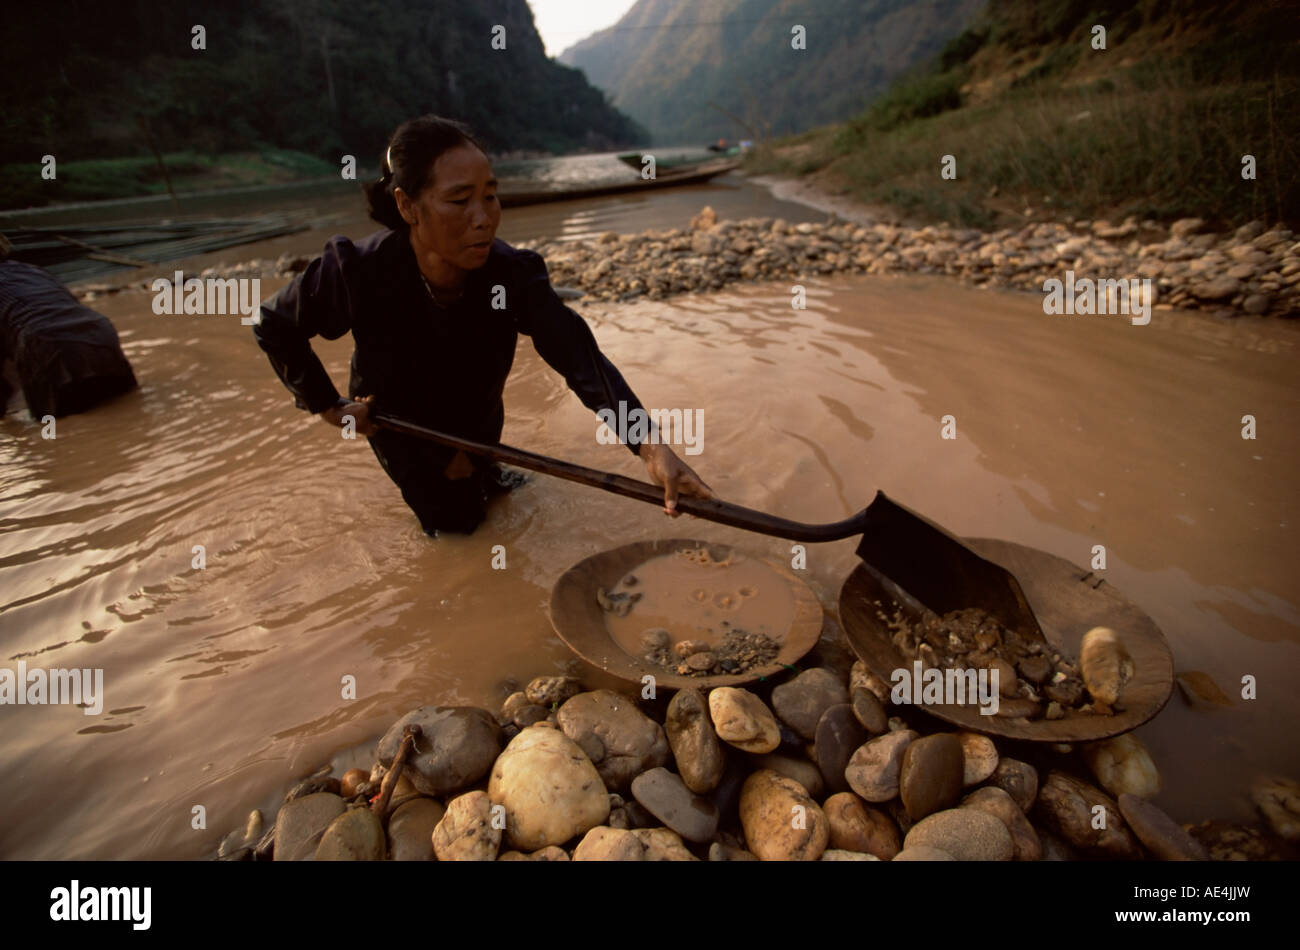 Gold panning, Nong Kiew, River Nam Ou, Laos, Indochina, Southeast Asia, Asia - Stock Image